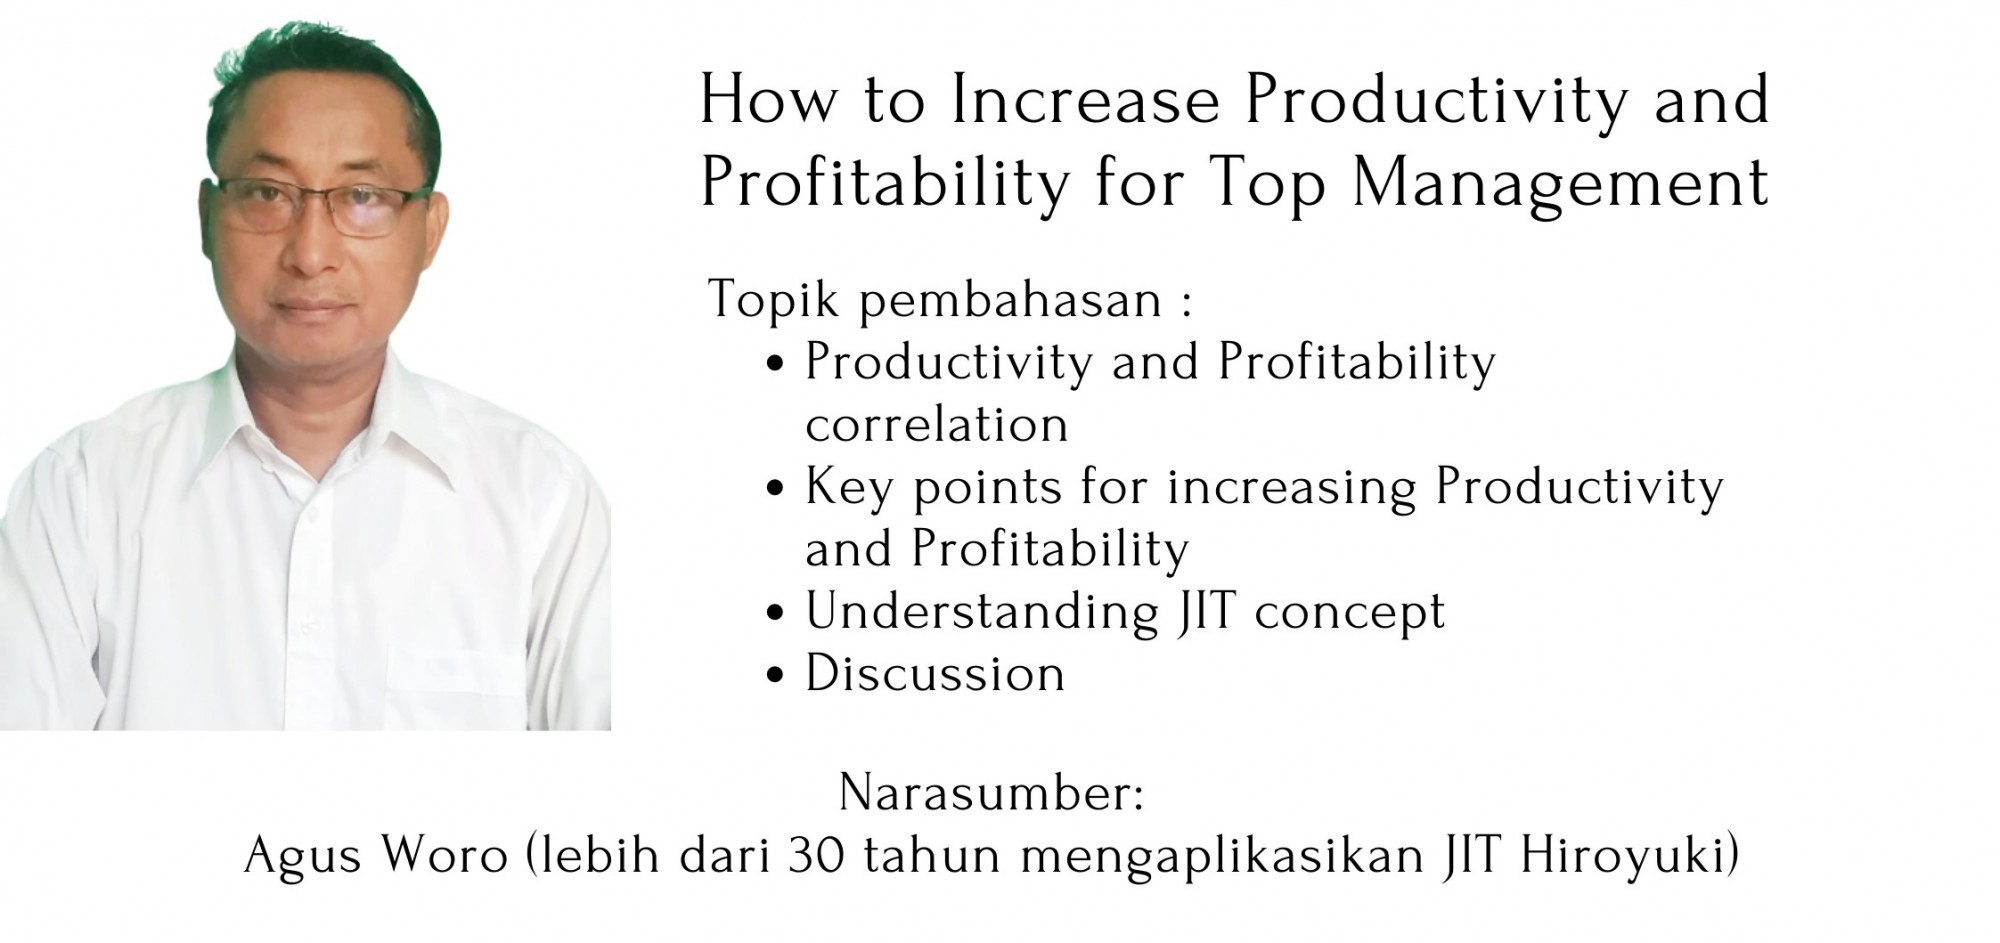 How to Increase Productivity and Profitability for Top Management